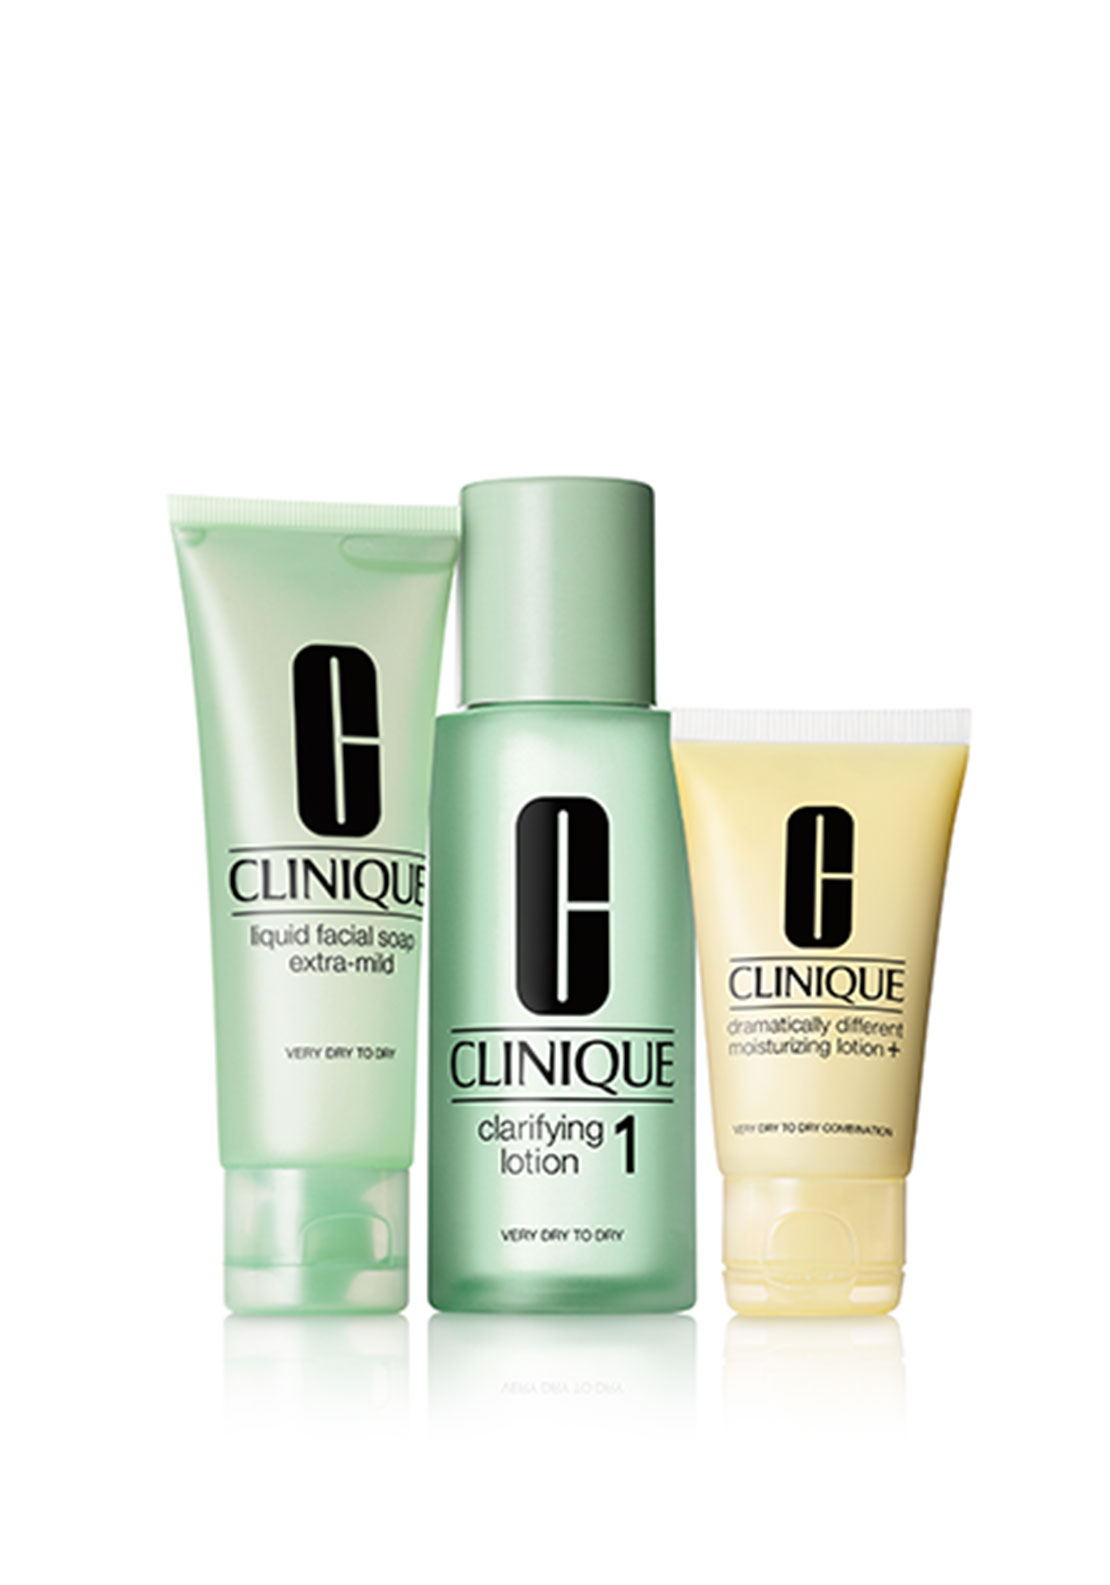 Clinique 3 Step System Gift Set, Skin Type 1